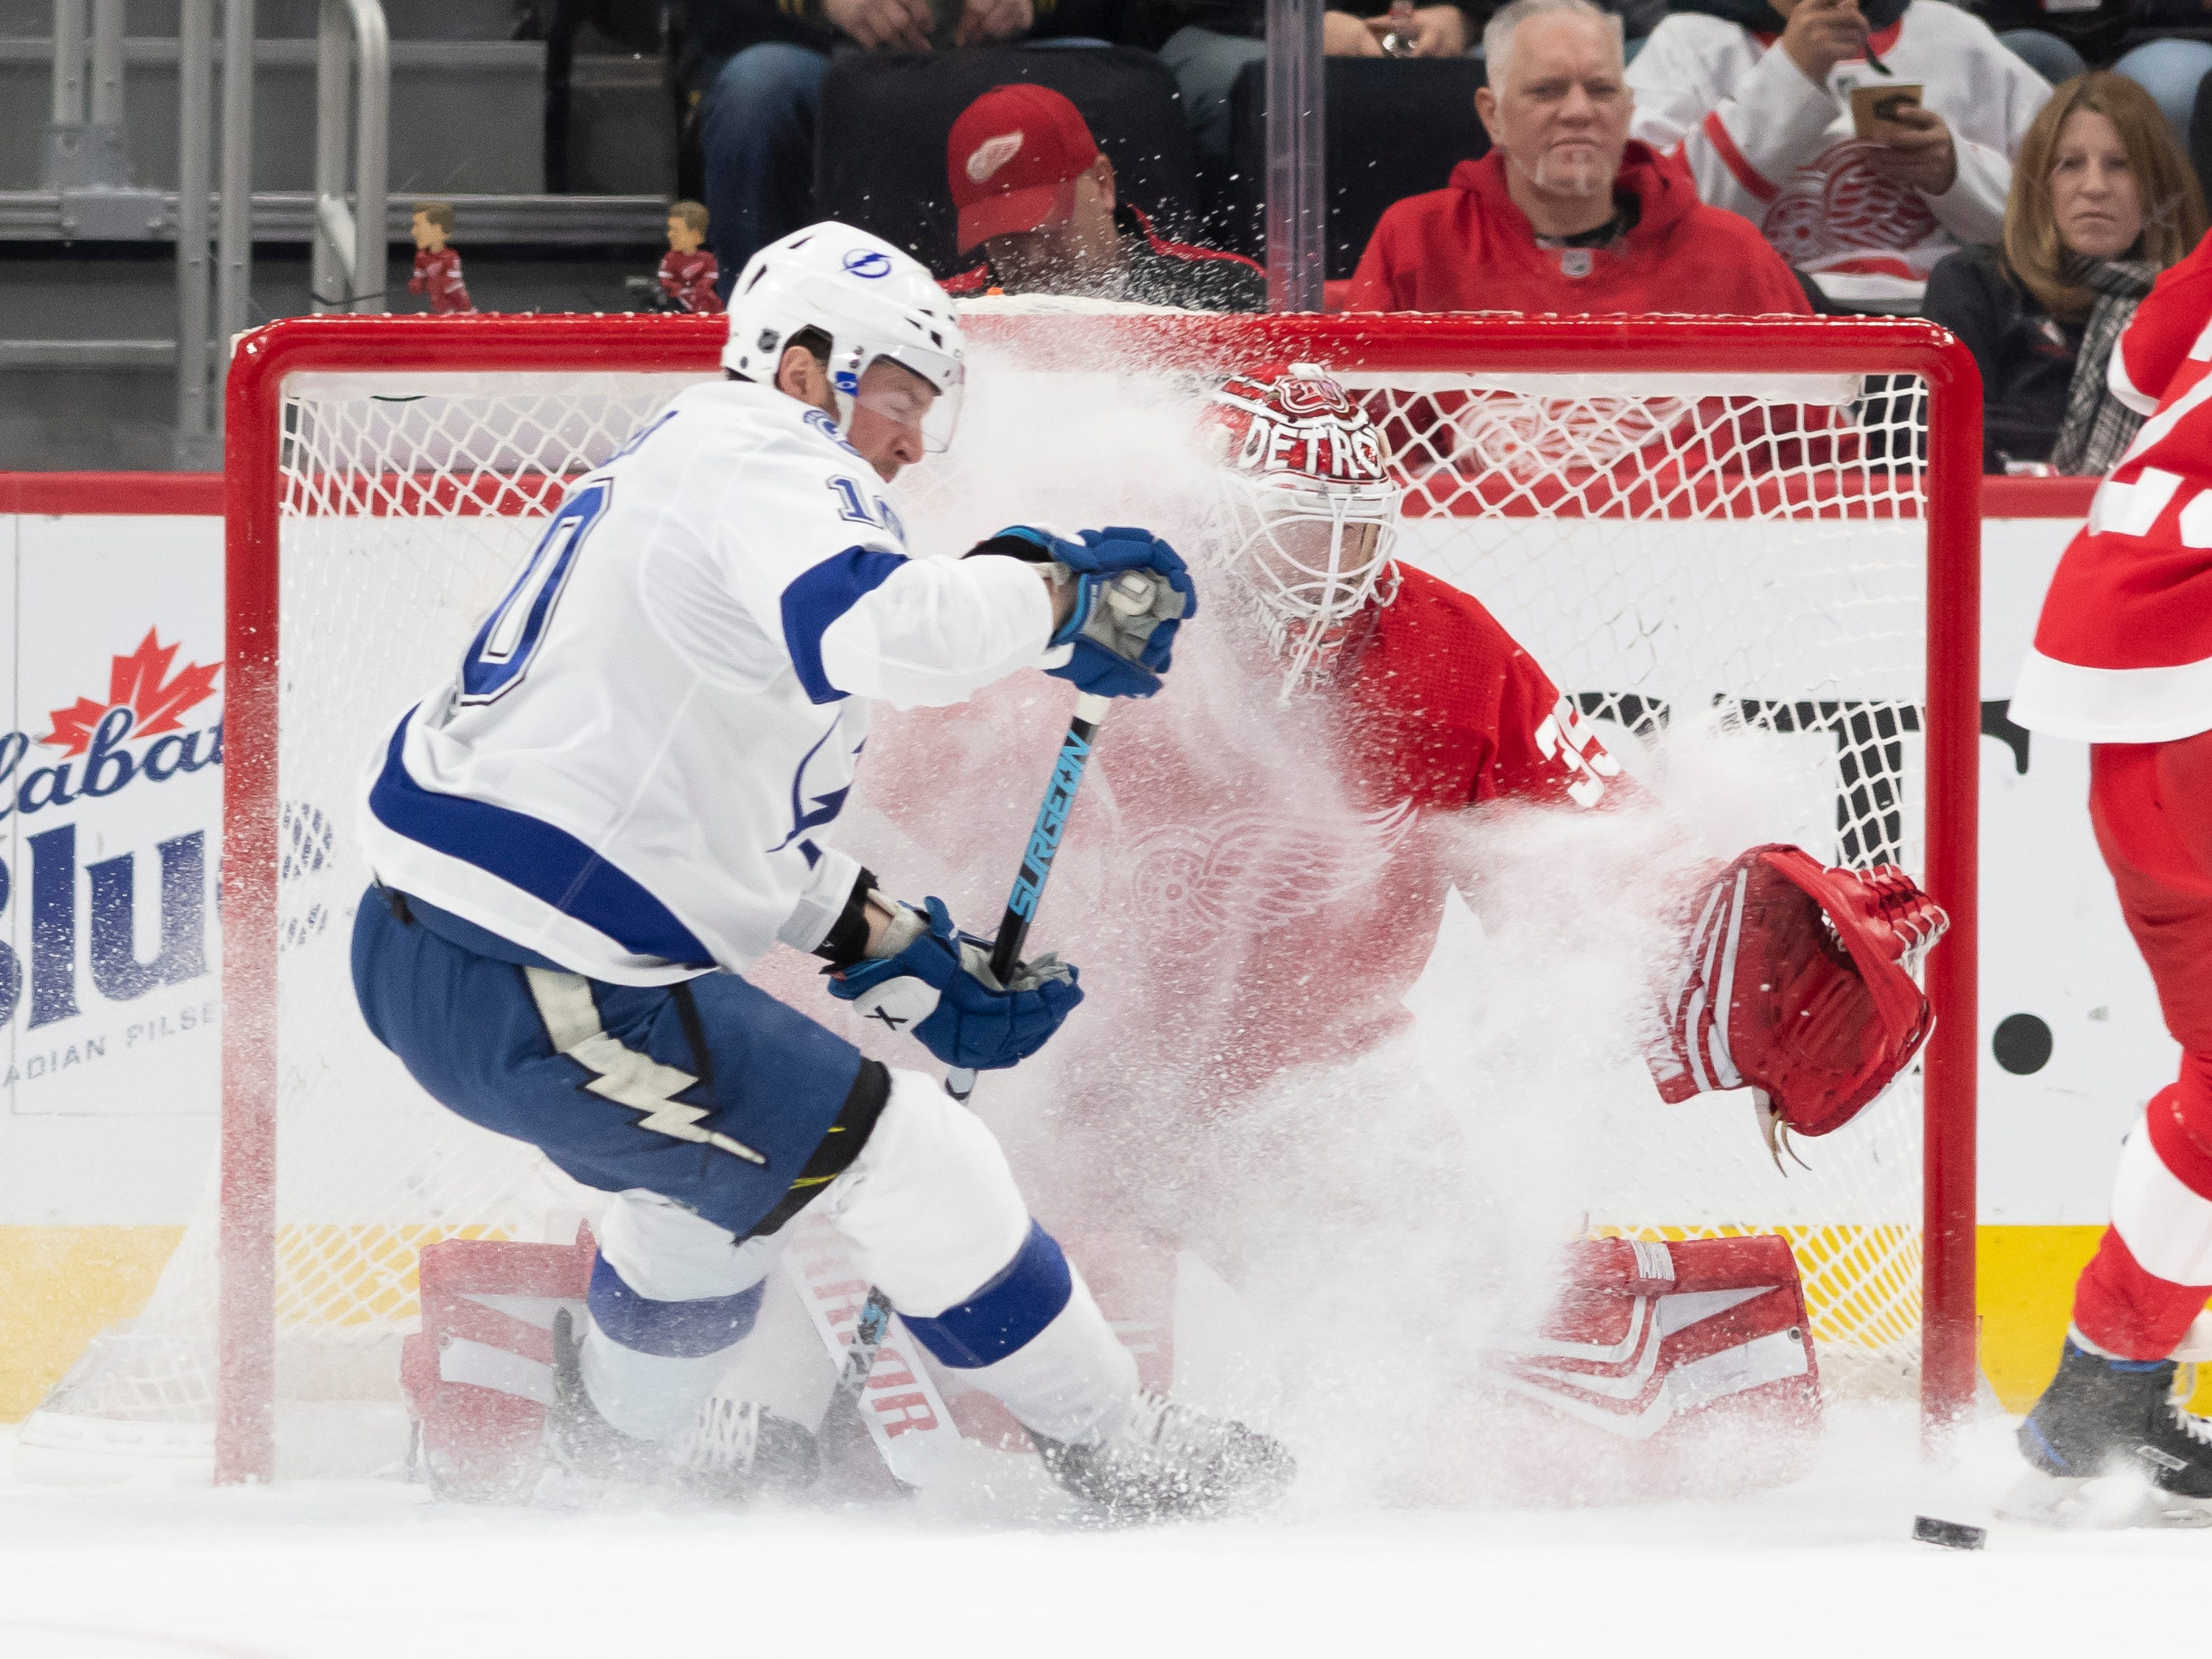 Tampa Bay center J.T. Miller tries to get the puck past Detroit goaltender Jimmy Howard in the first period.